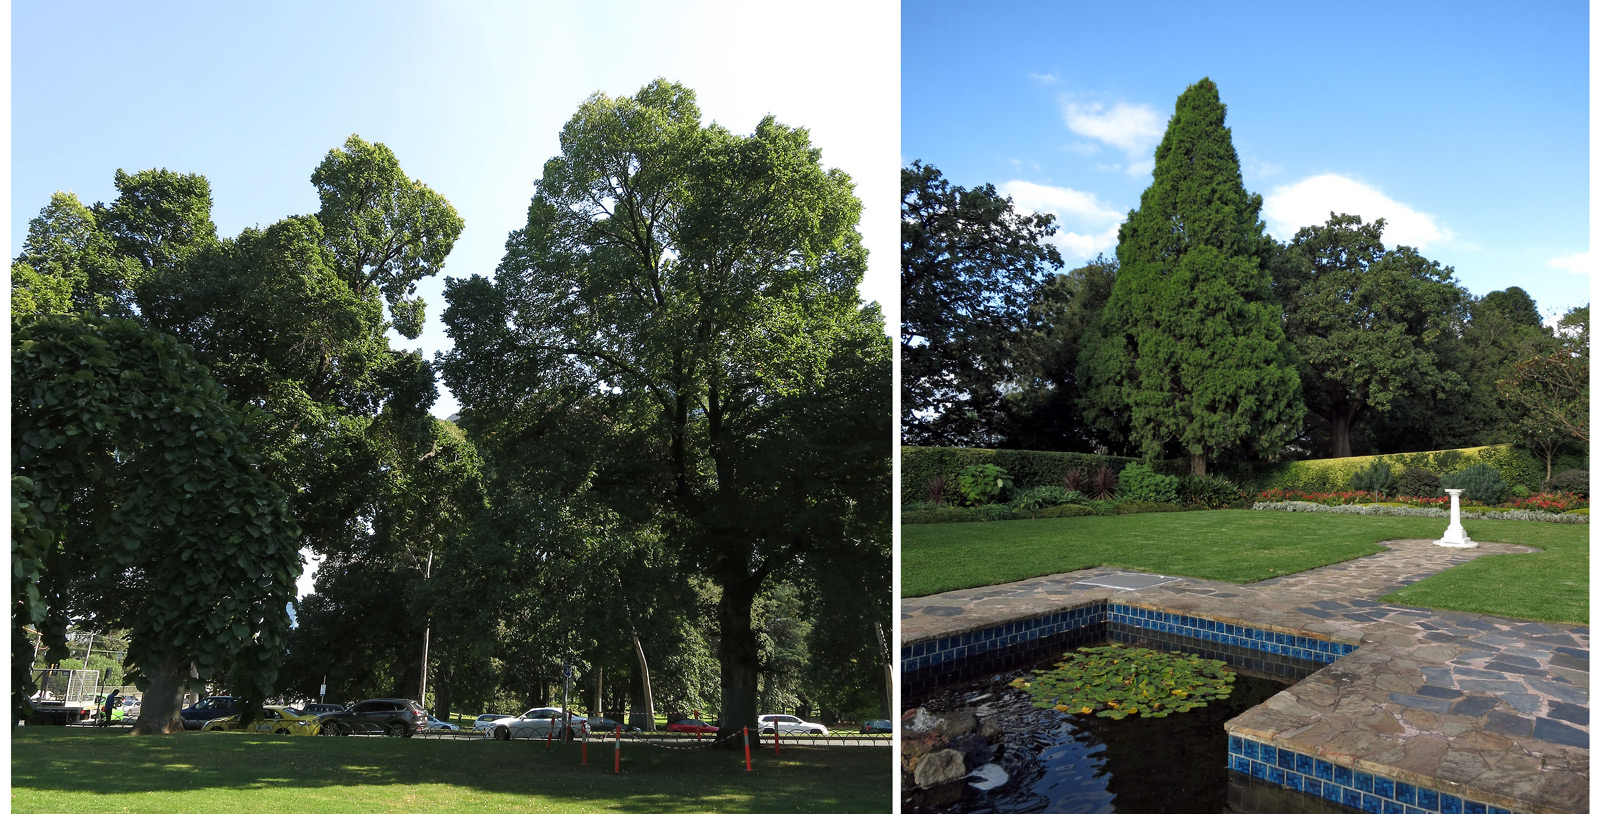 Tall trees in park with cars; Formal garden with water and trees